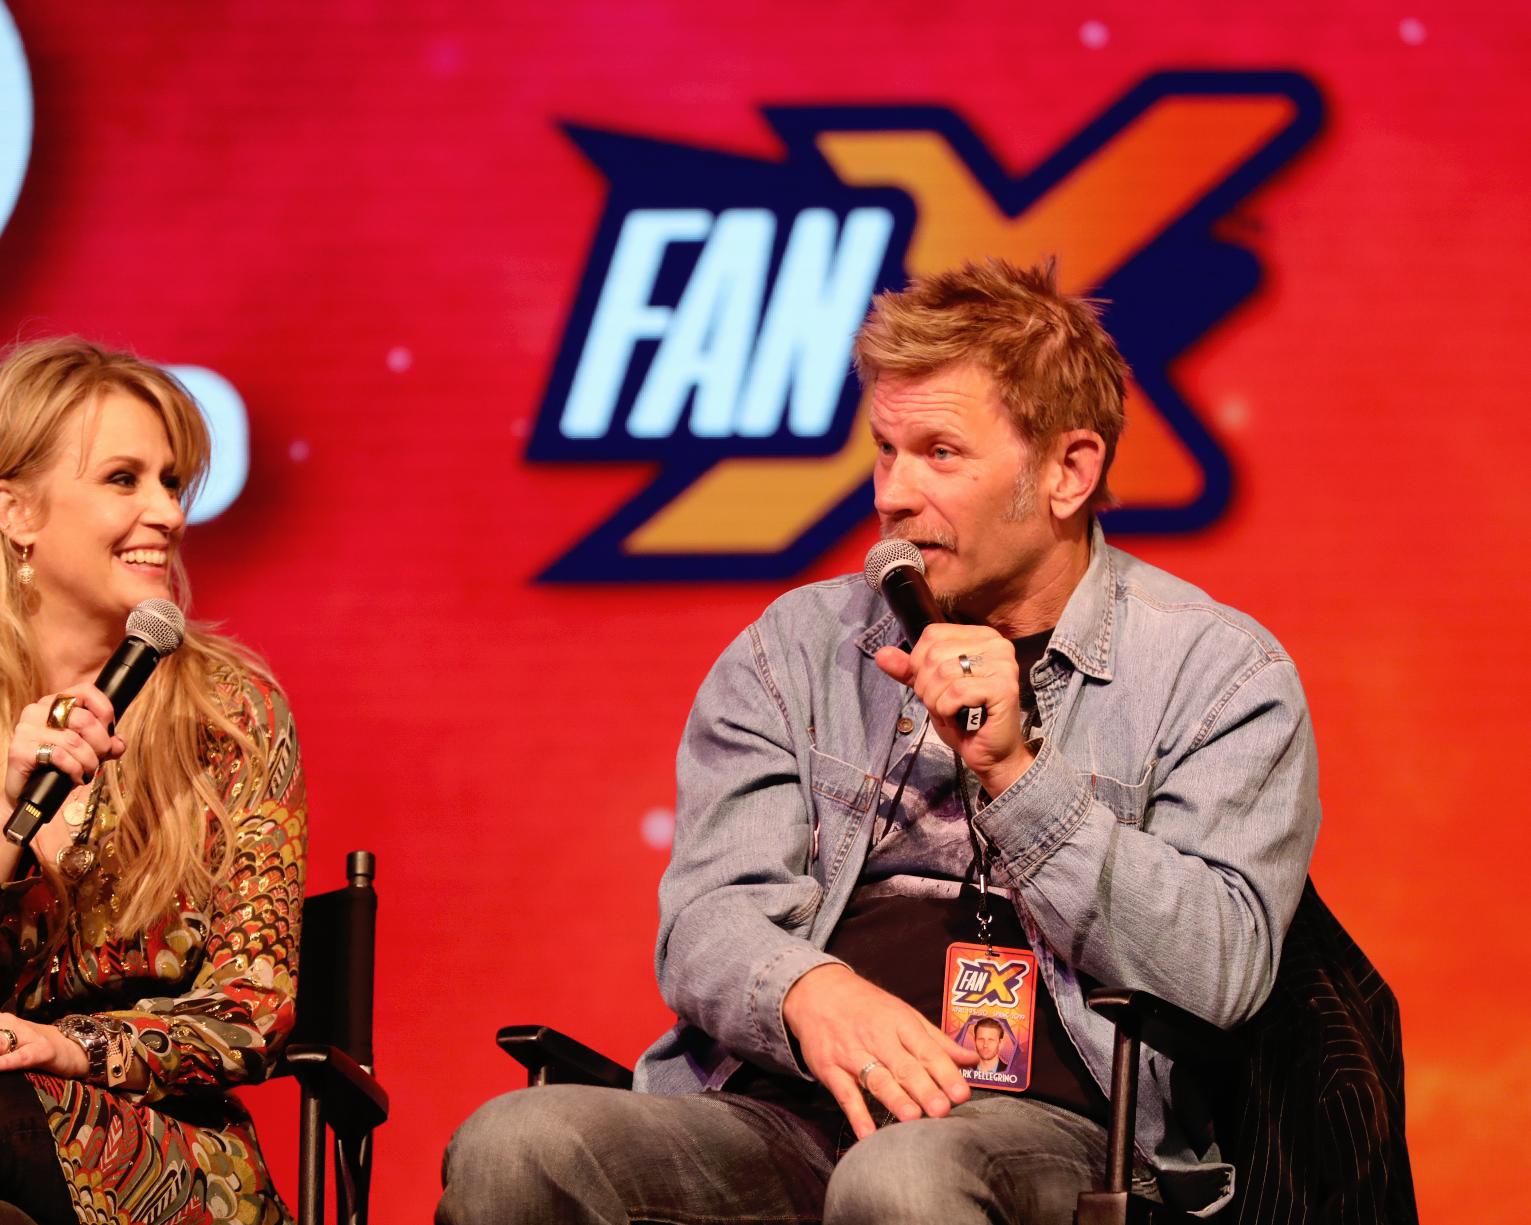 Mark Pellegrino and Samantha Smith talk Supernatural with the fans, recounting their favorite moments and who in the cast is the biggest prankster. Photo: @Lmsorenson